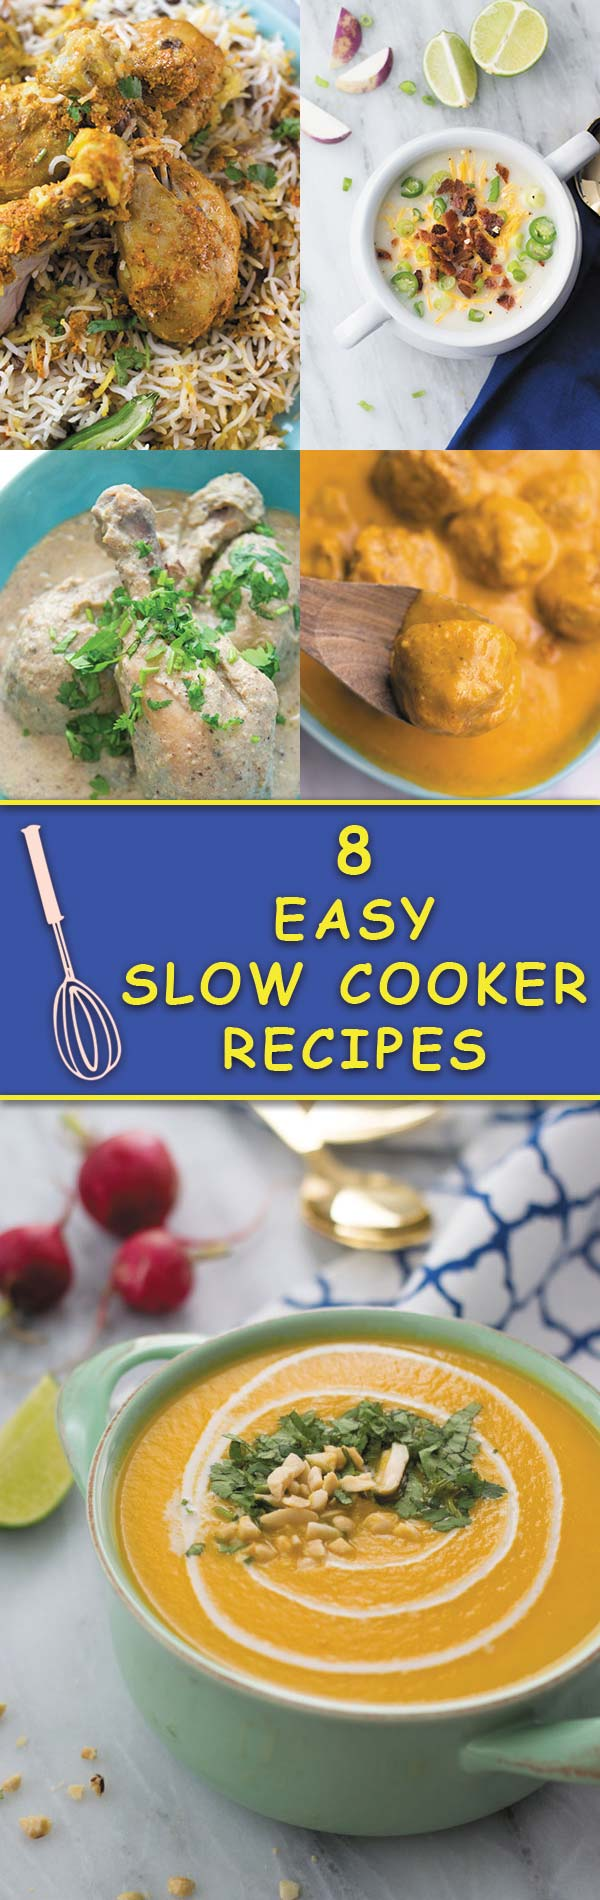 8 Easy Slow Cooker Recipes ->> Put your SLOW COOKER to work and enjoy a delicious comforting meal with just few minutes of prep work! Making DINNER was never this fun!